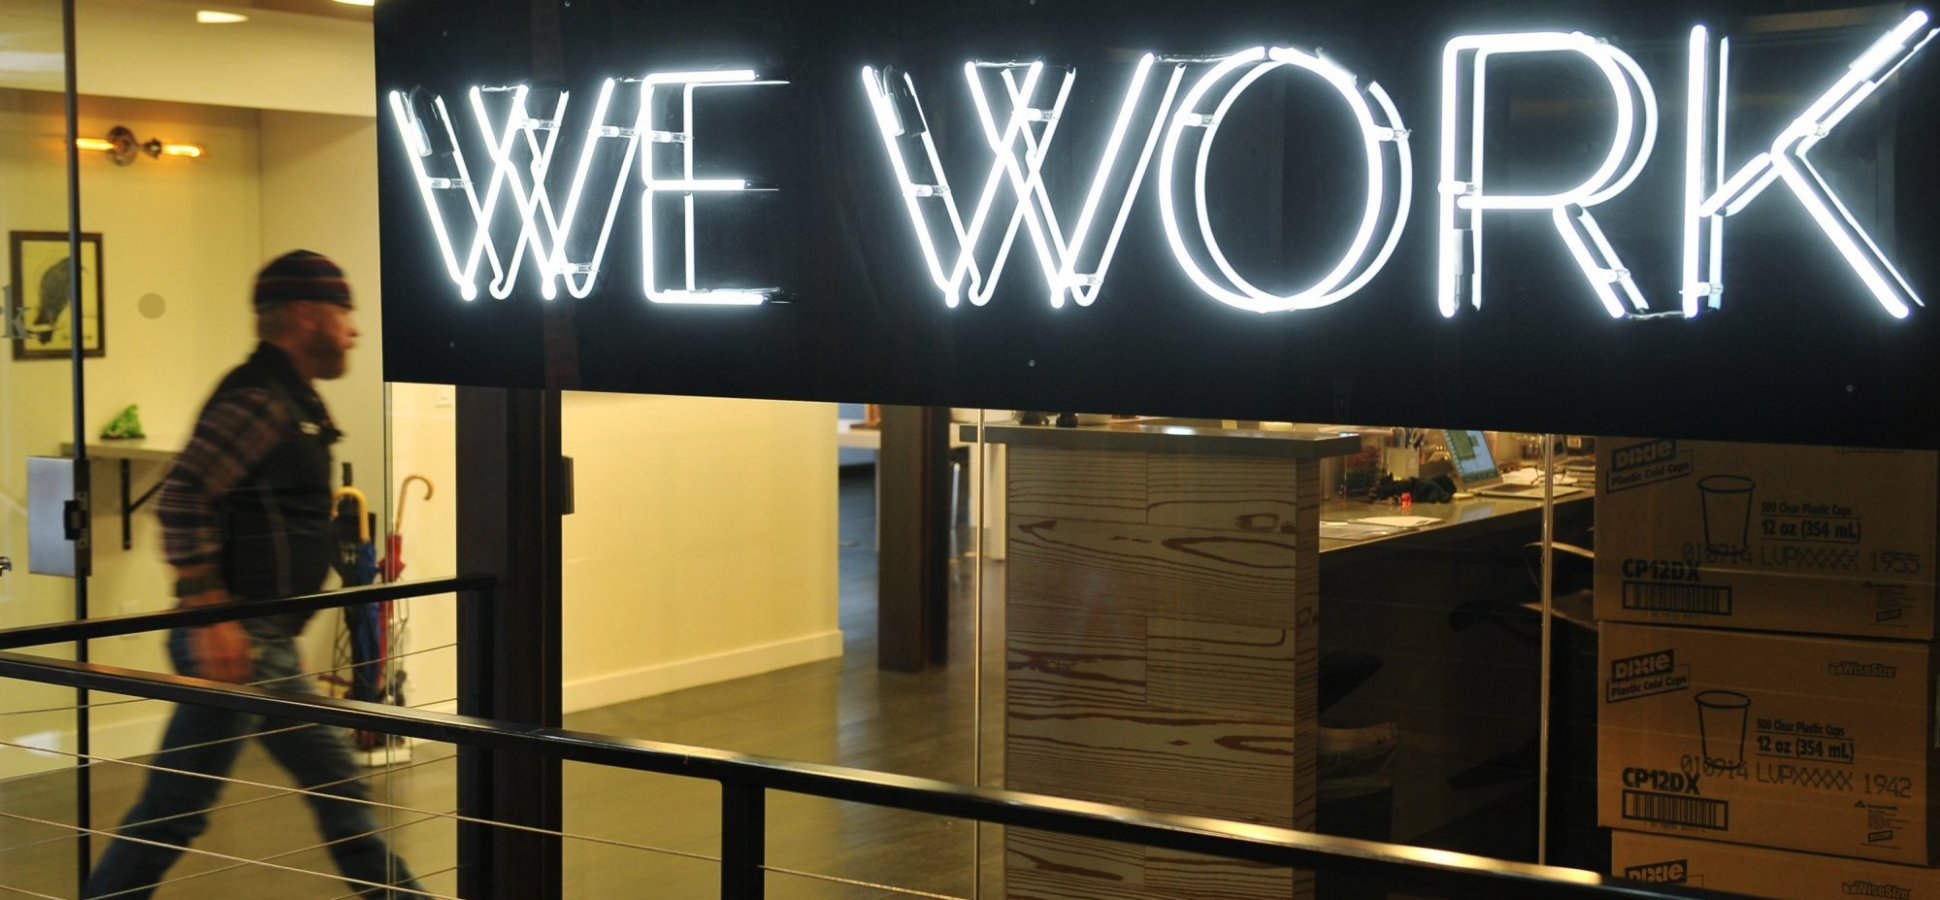 WeWork Just Made a Disturbing Acquisition. It Raises a Lot of Flags About Workers' Privacy